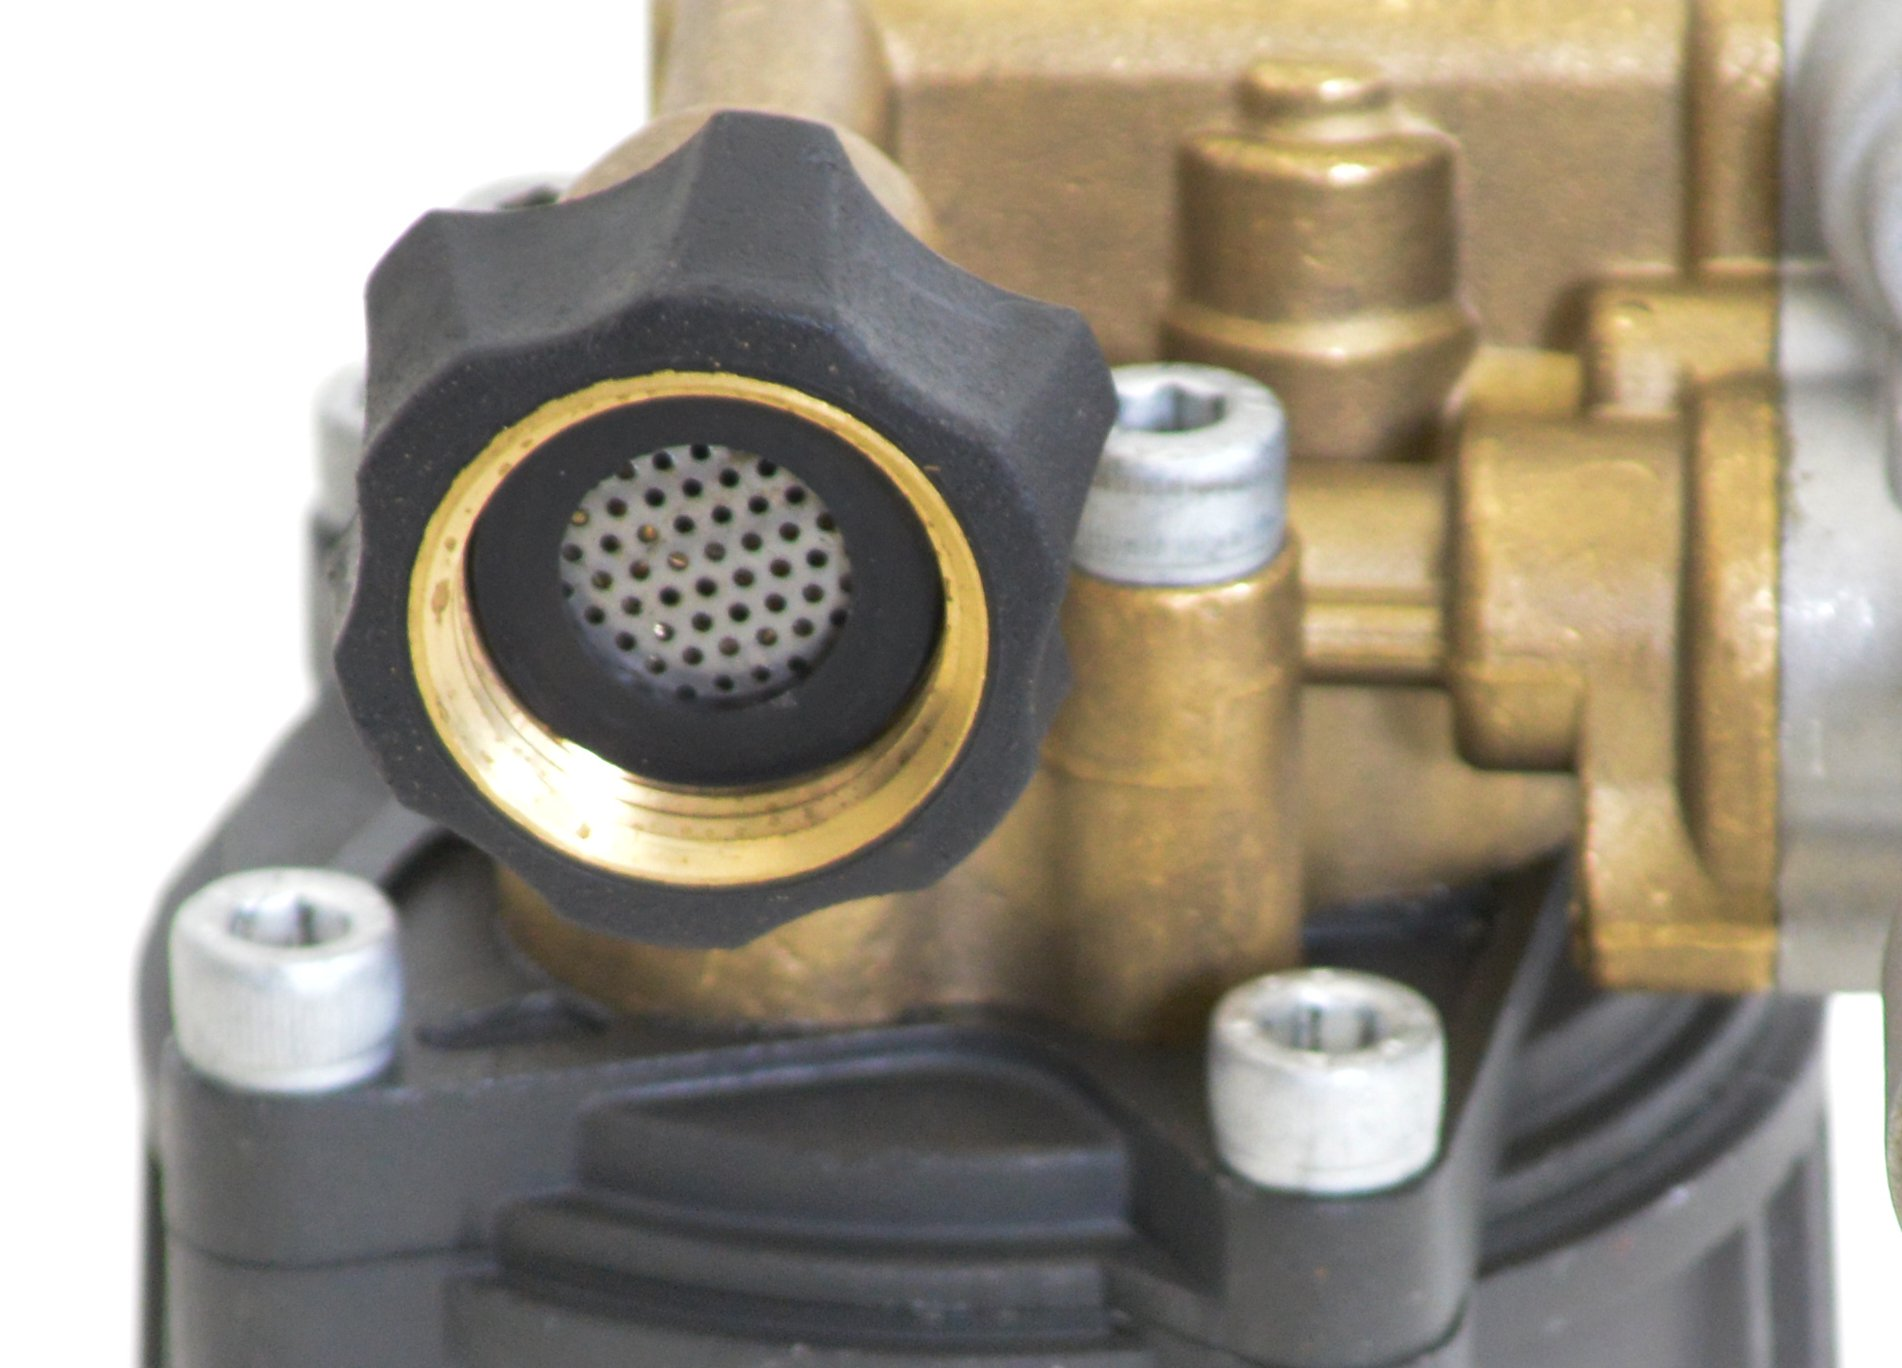 SIMPSON Cleaning 90029 Axial Cam Horizontal Pressure Washer Replacement Pump 8.6CAH12B 3100 PSI @ 2.5 GPM with Brass Head and PowerBoost Technology by Simpson Cleaning (Image #6)